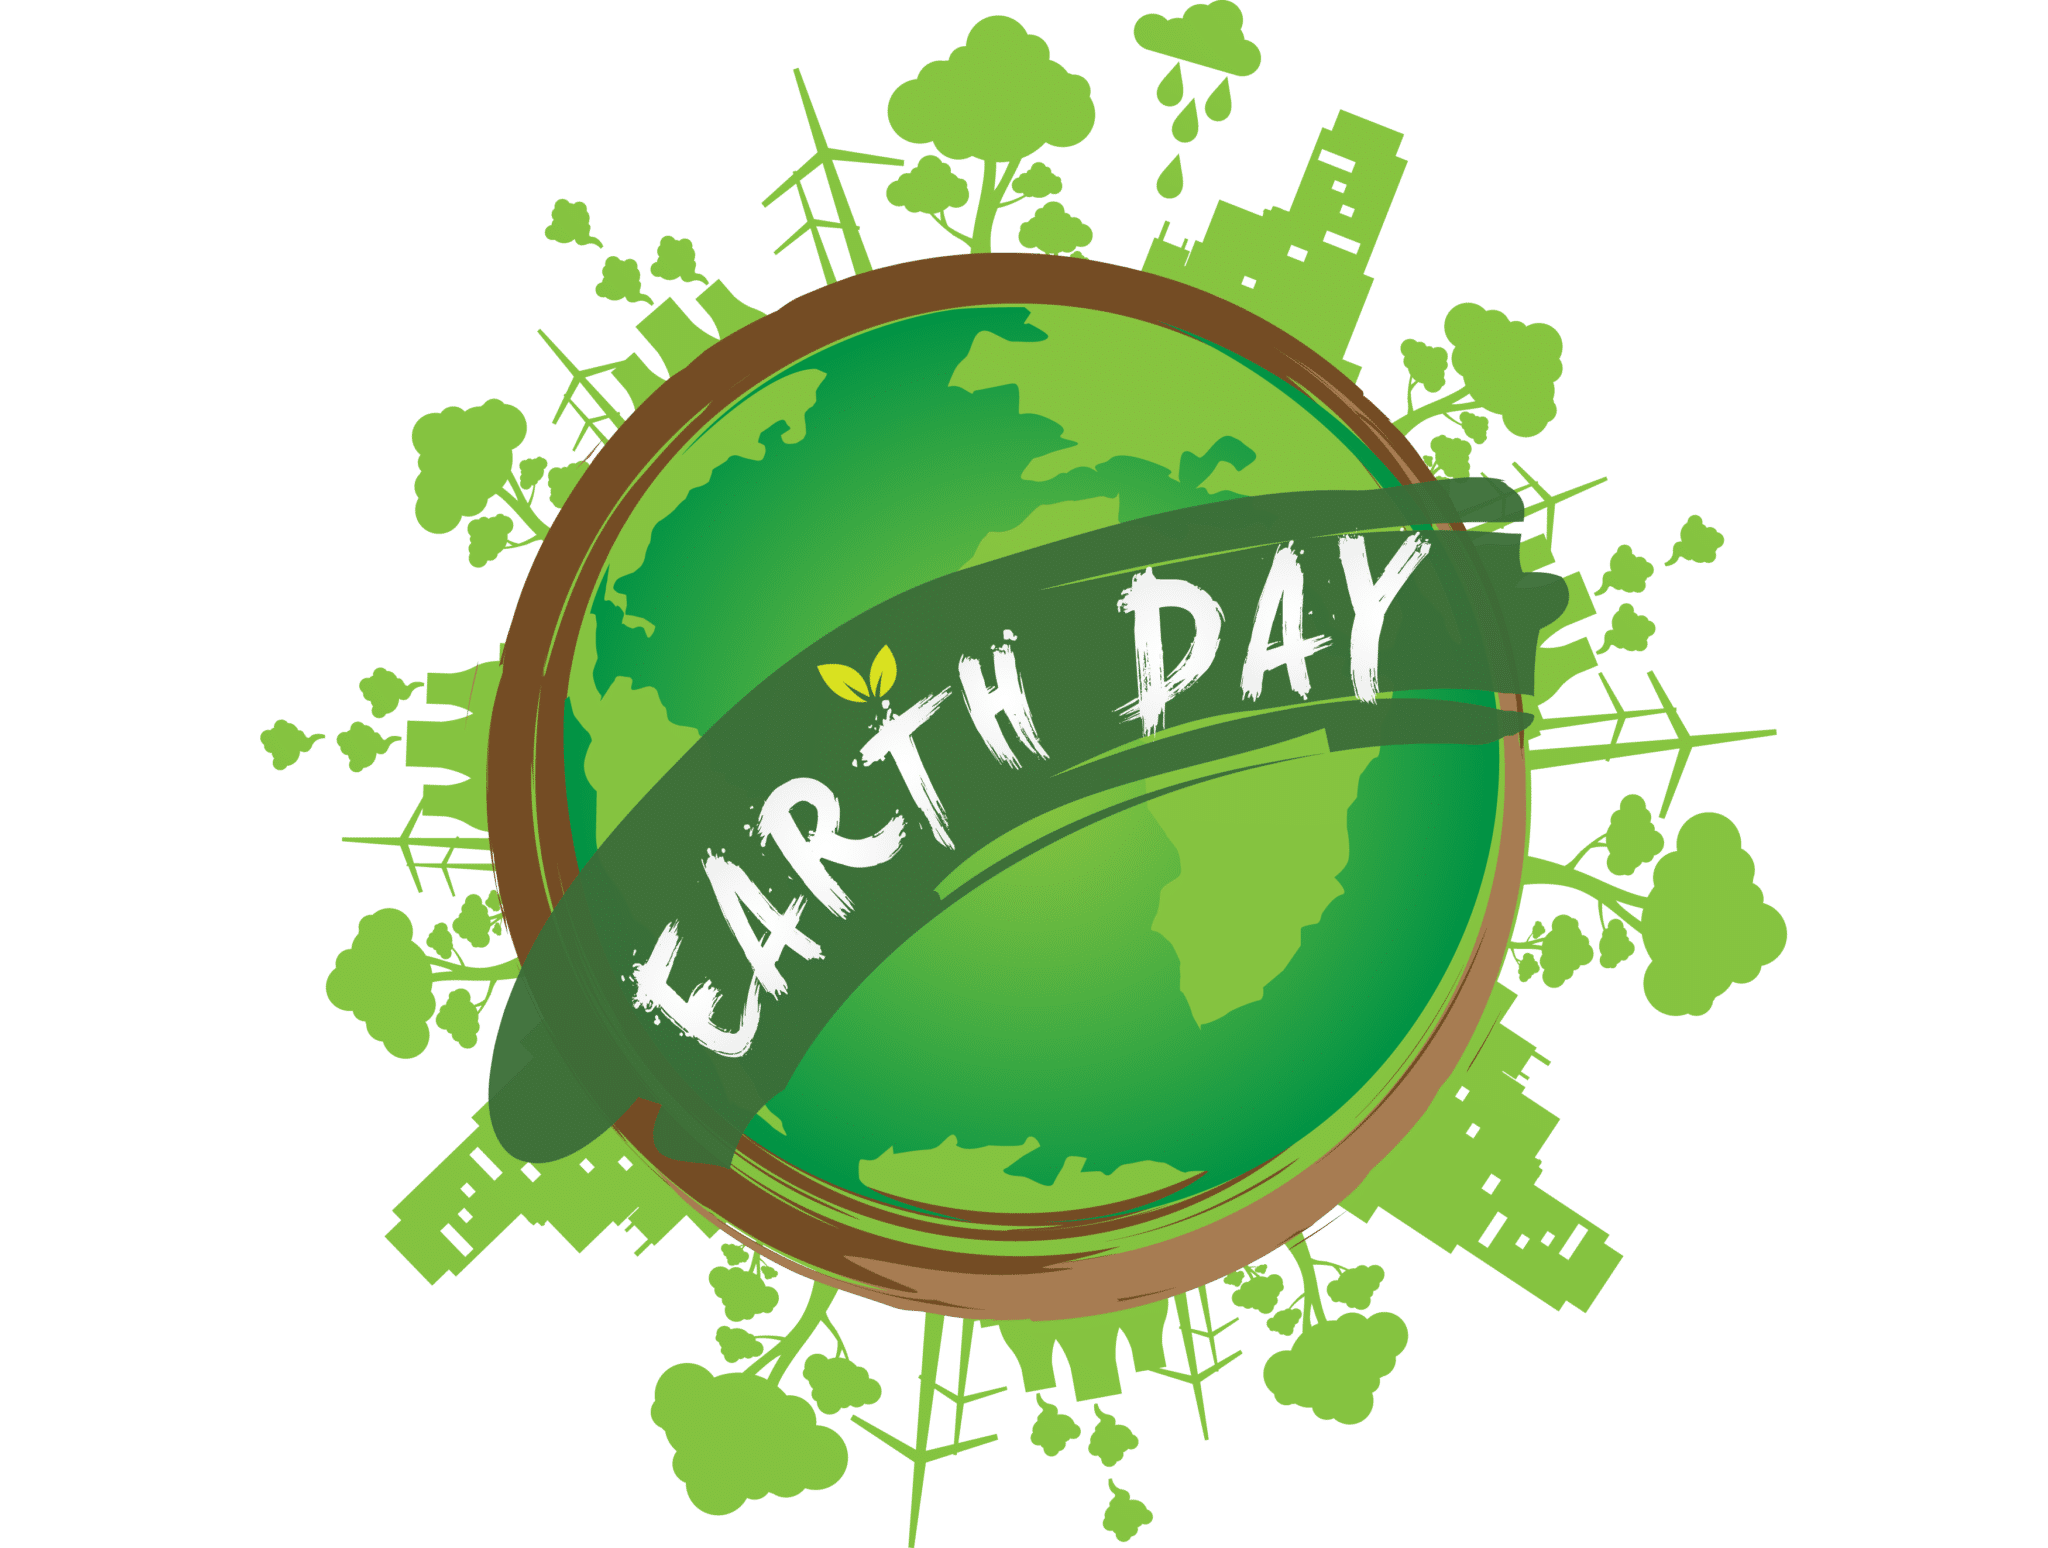 Earth Day Activities Planned for Next Week